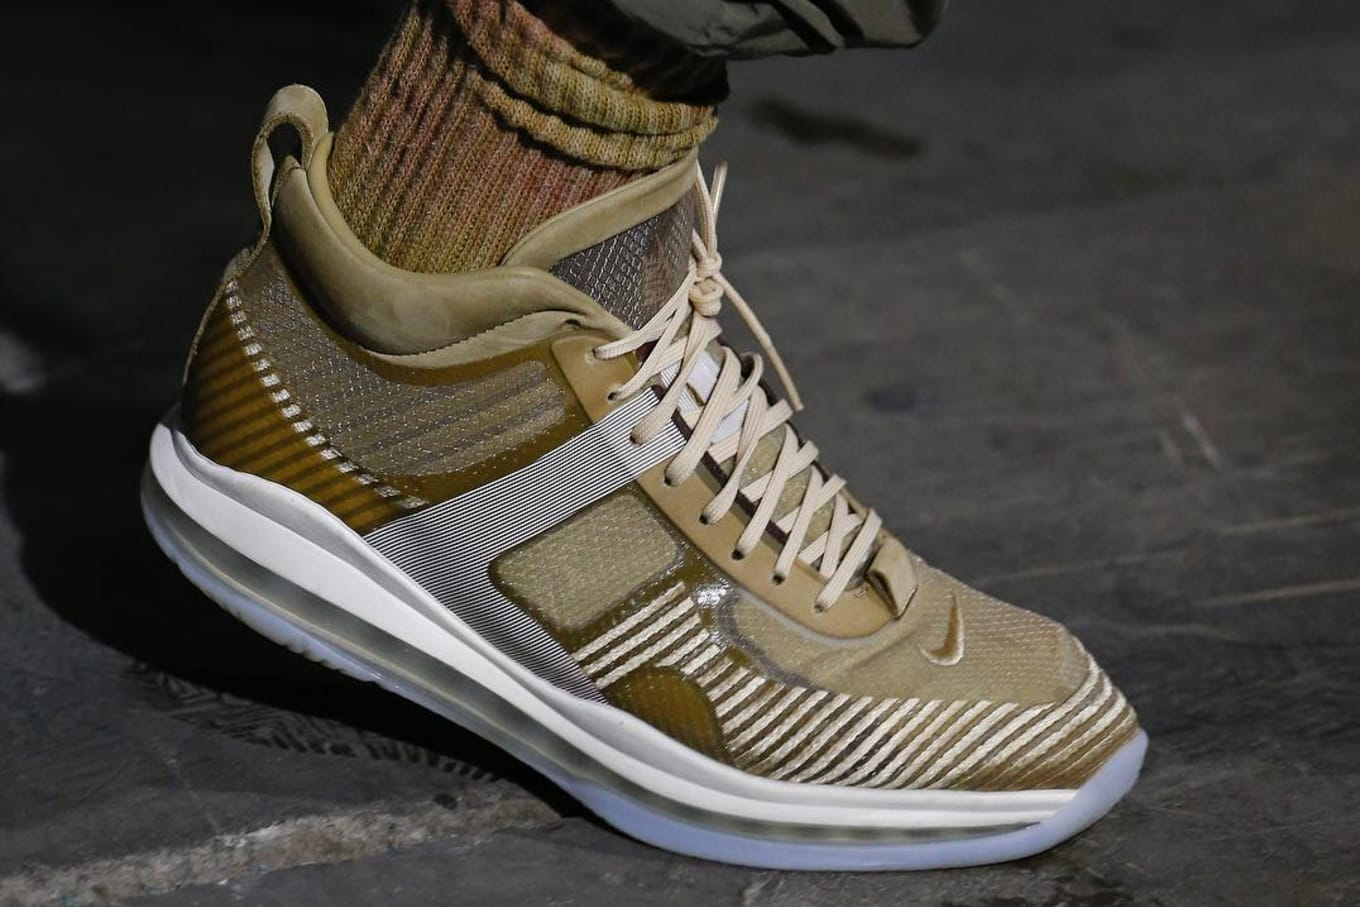 newest b0adf 32f4f John Elliott Debuts New LeBron Icon at New York Fashion Week. The  designer s latest Nike collab.